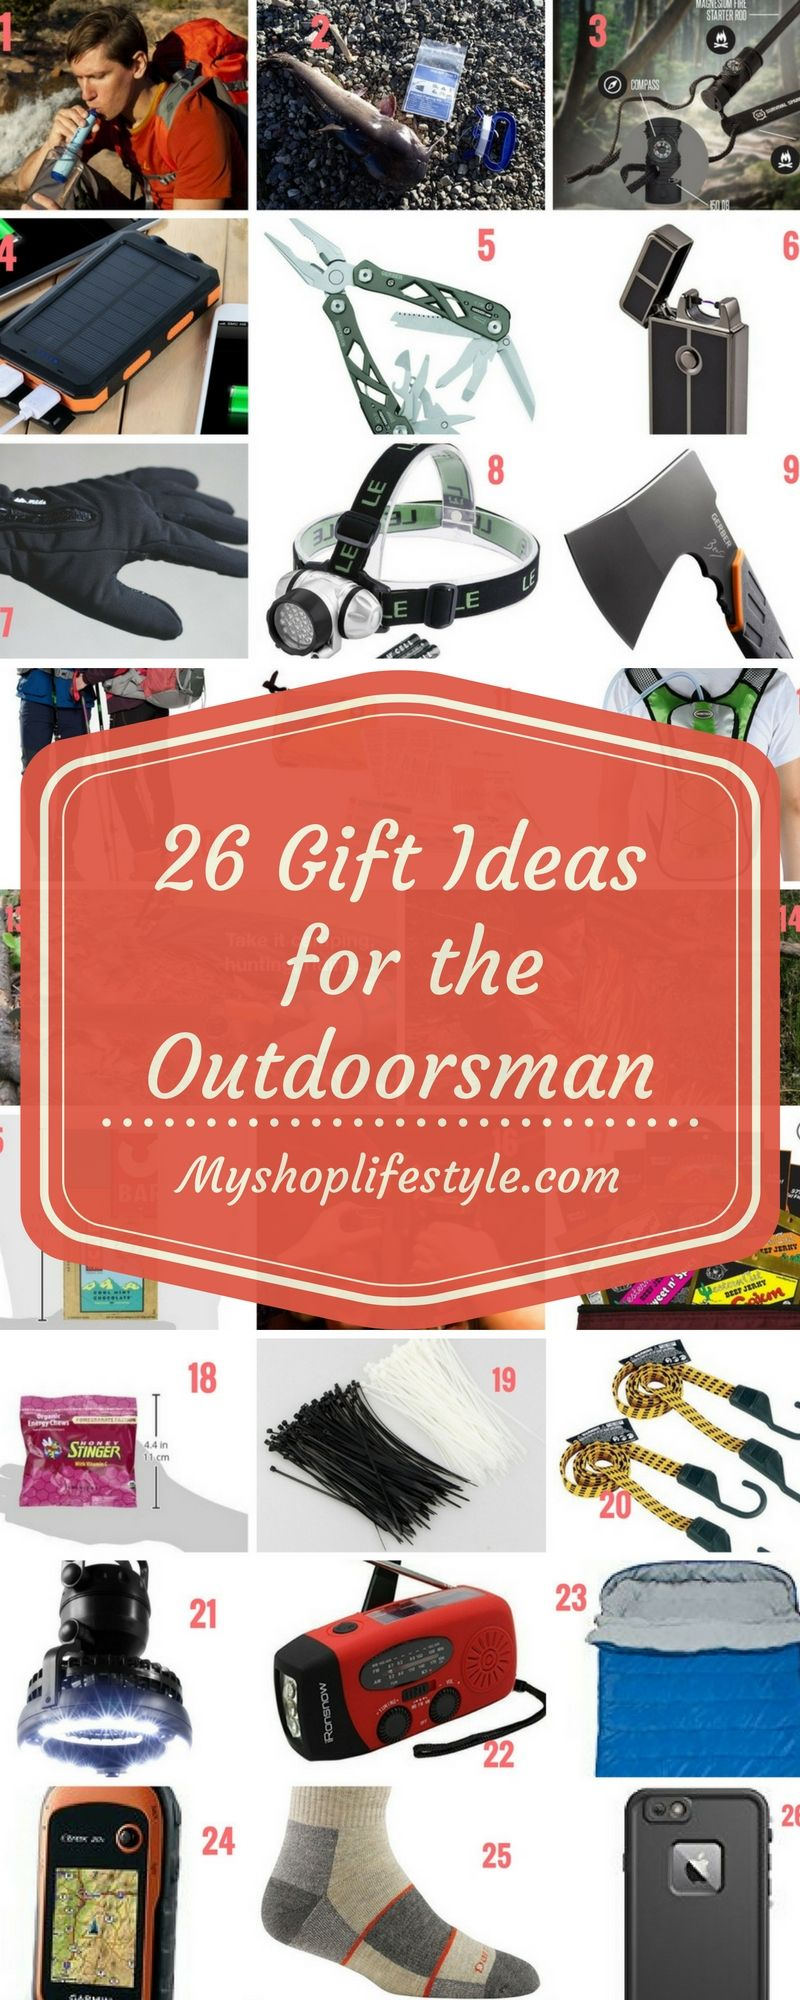 these are great gift ideas for the outdoorsman who loves to camp and hike here are 26 great gift ideas for the camper or hiker on your christmas list - Christmas Gifts For Outdoorsmen